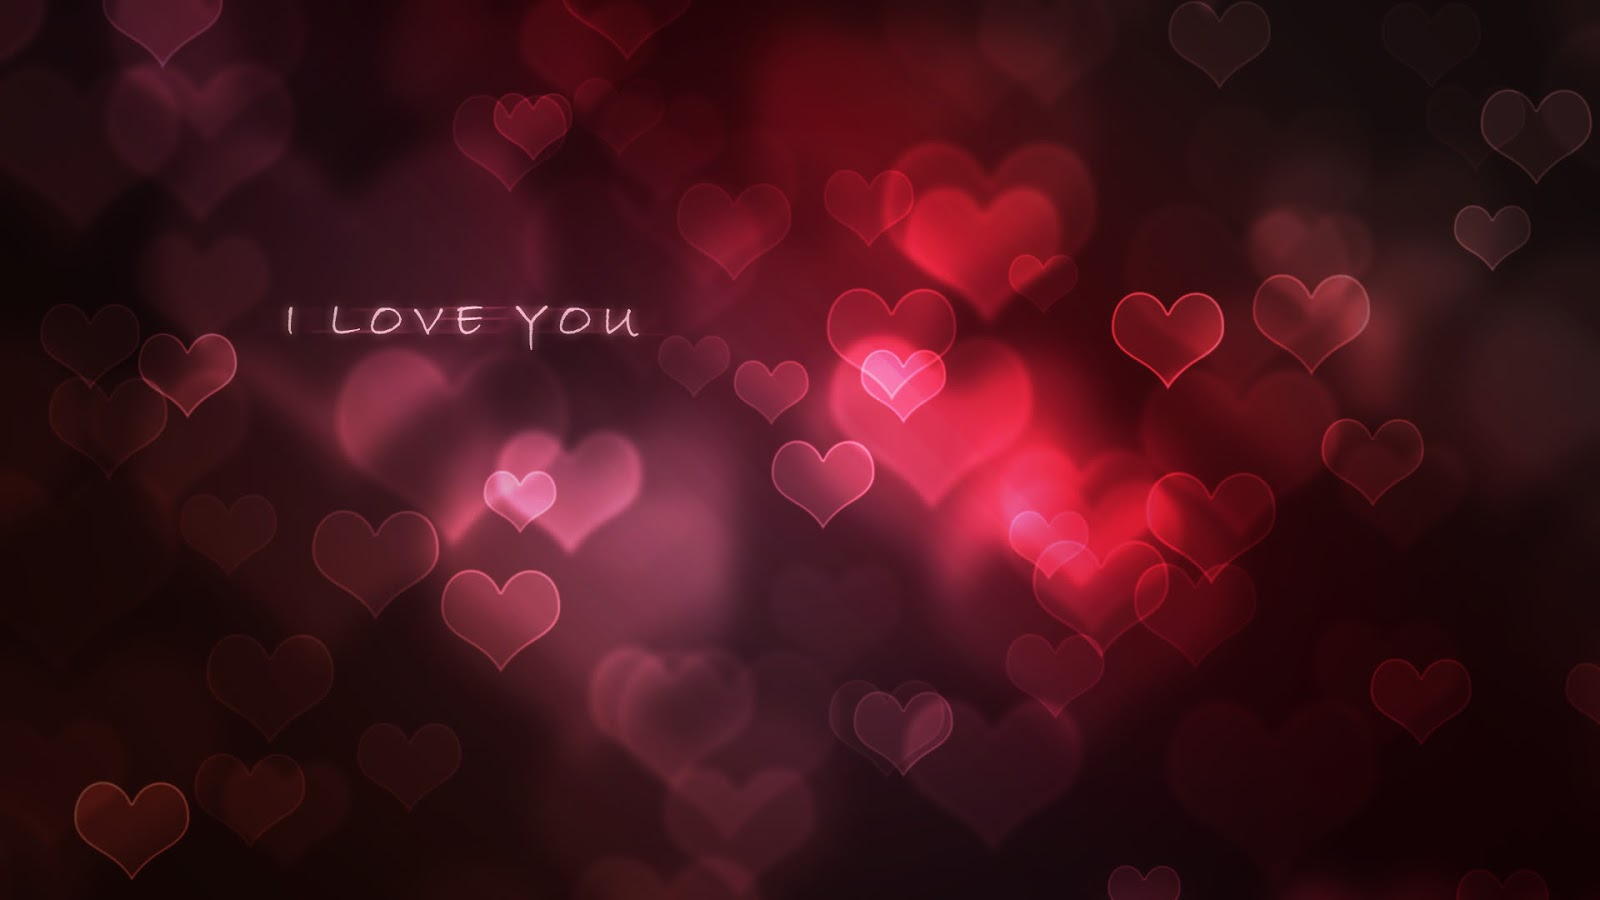 Free Download Love You Ilu Pictures Photos And Hd Wallpapers 2016 1600x900 For Your Desktop Mobile Tablet Explore 50 Love Backgrounds Wallpaper Valentine Wallpapers For Desktop I Love You